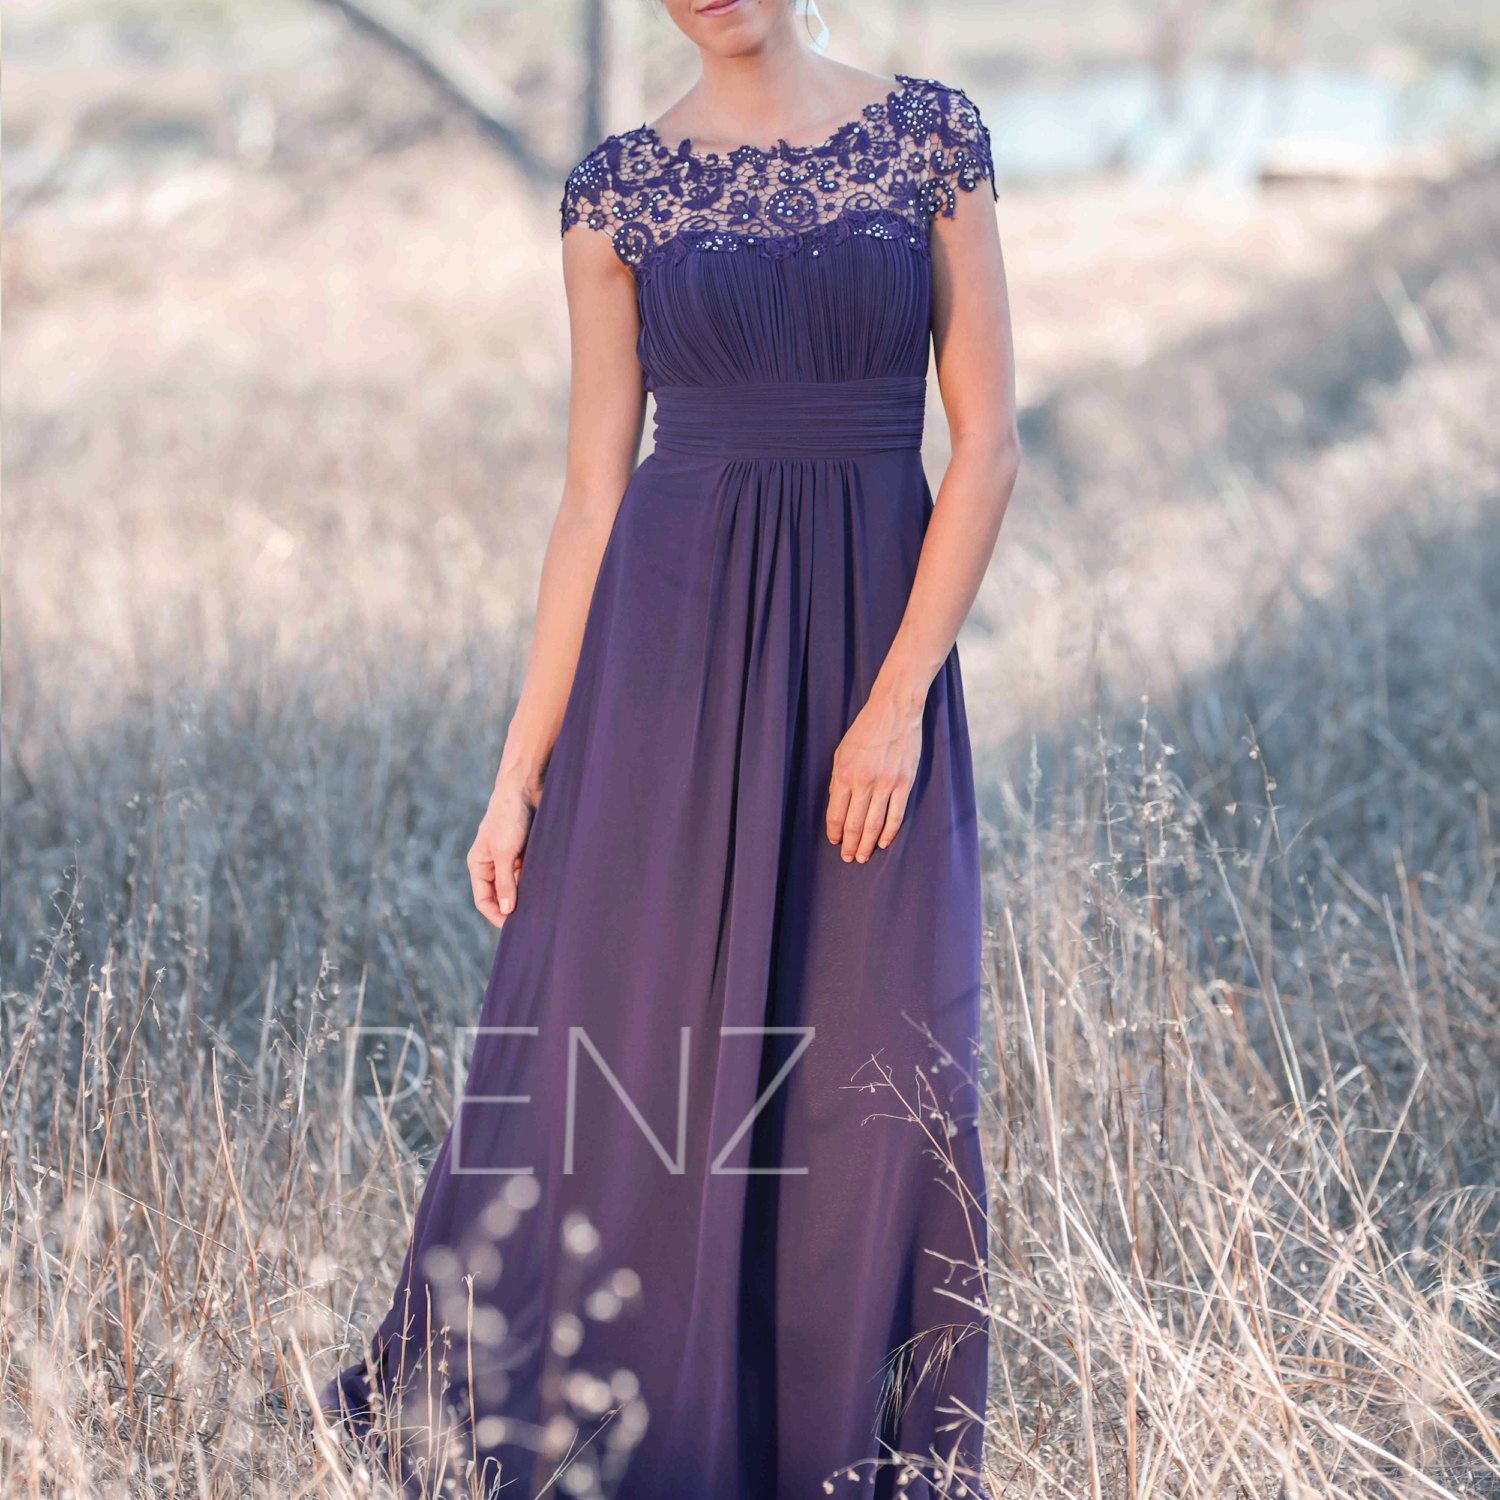 2017 dark purple bridesmaid dress lace illusion wedding dress 2015 purple bridesmaid dress lace illusion wedding dress long chiffon womens party dress maxi dress prom ombrellifo Image collections